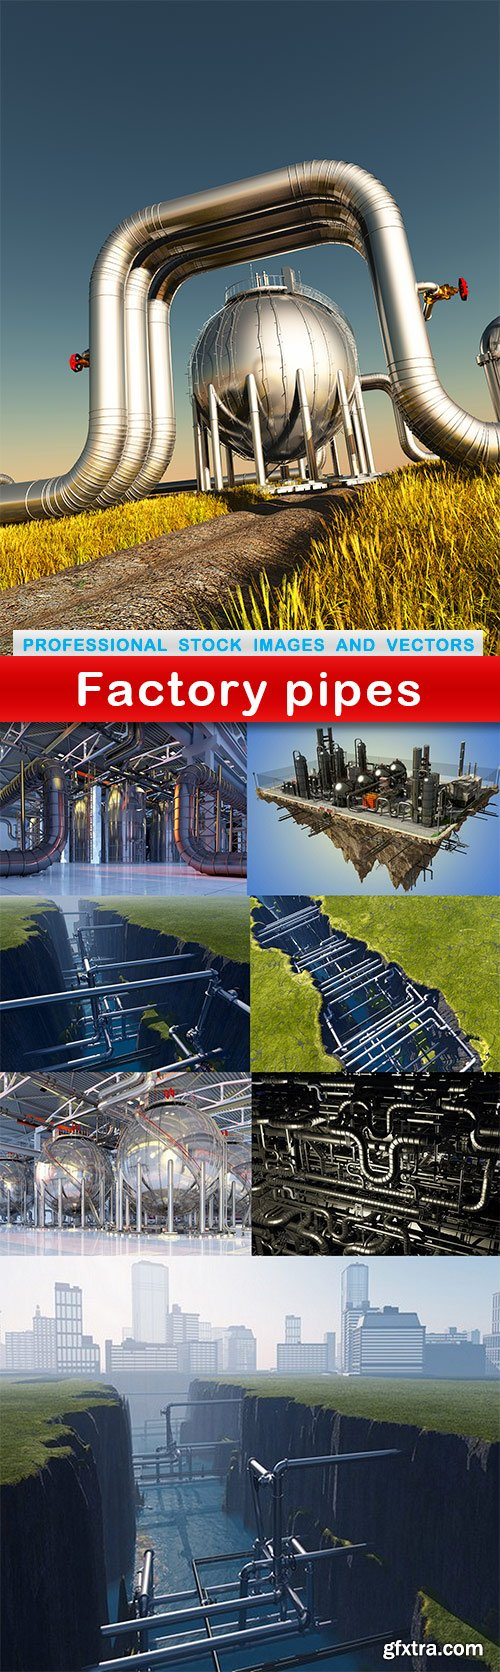 Factory pipes - 8 UHQ JPEG